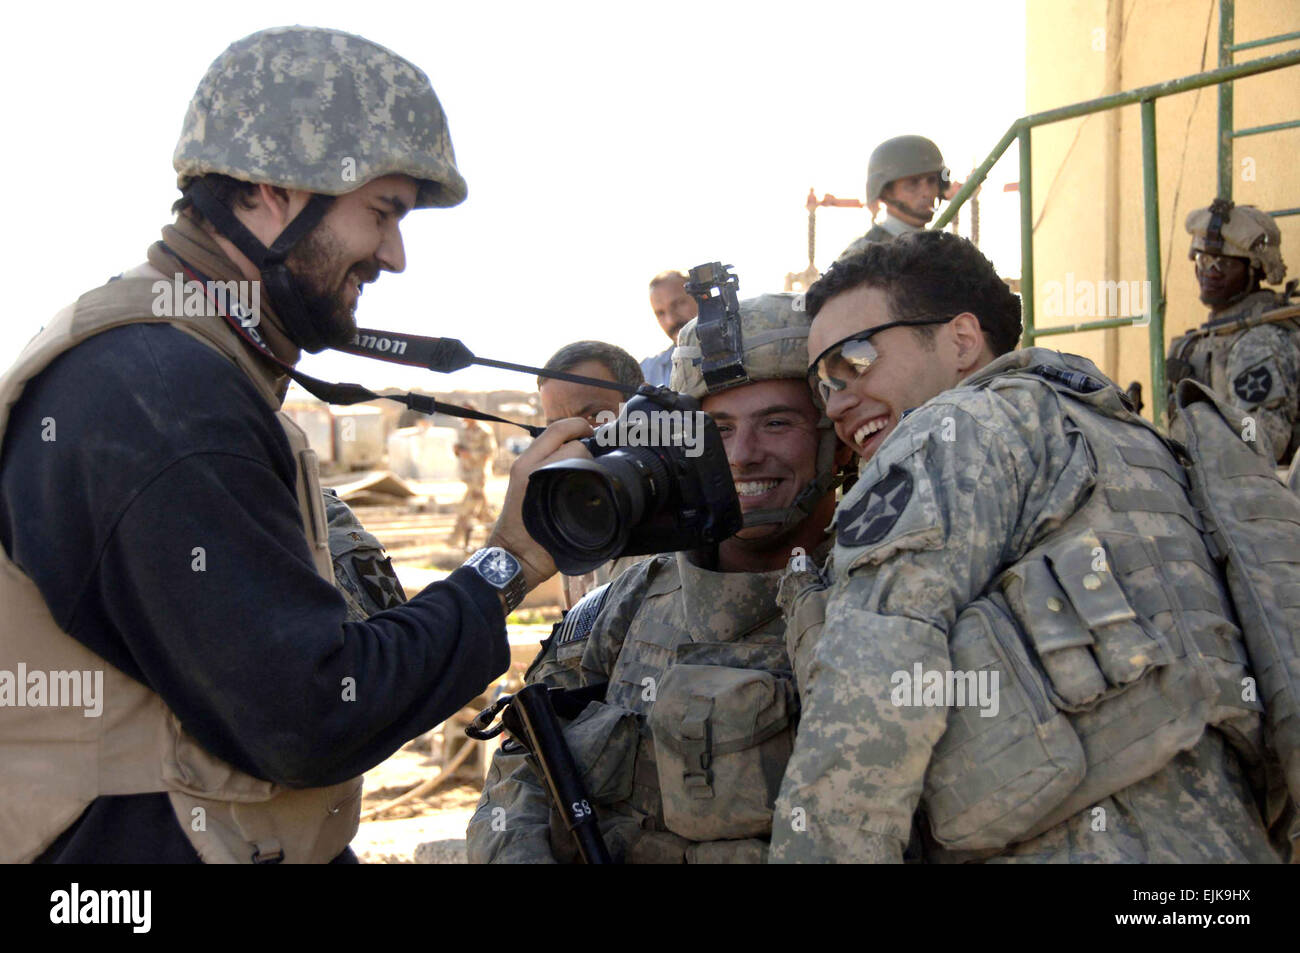 U.S. Army Sgt. Daniel Gaud and Spc. Guy M. Storz look at a photo of themselves taken by an Associated Press photographer - Stock Image